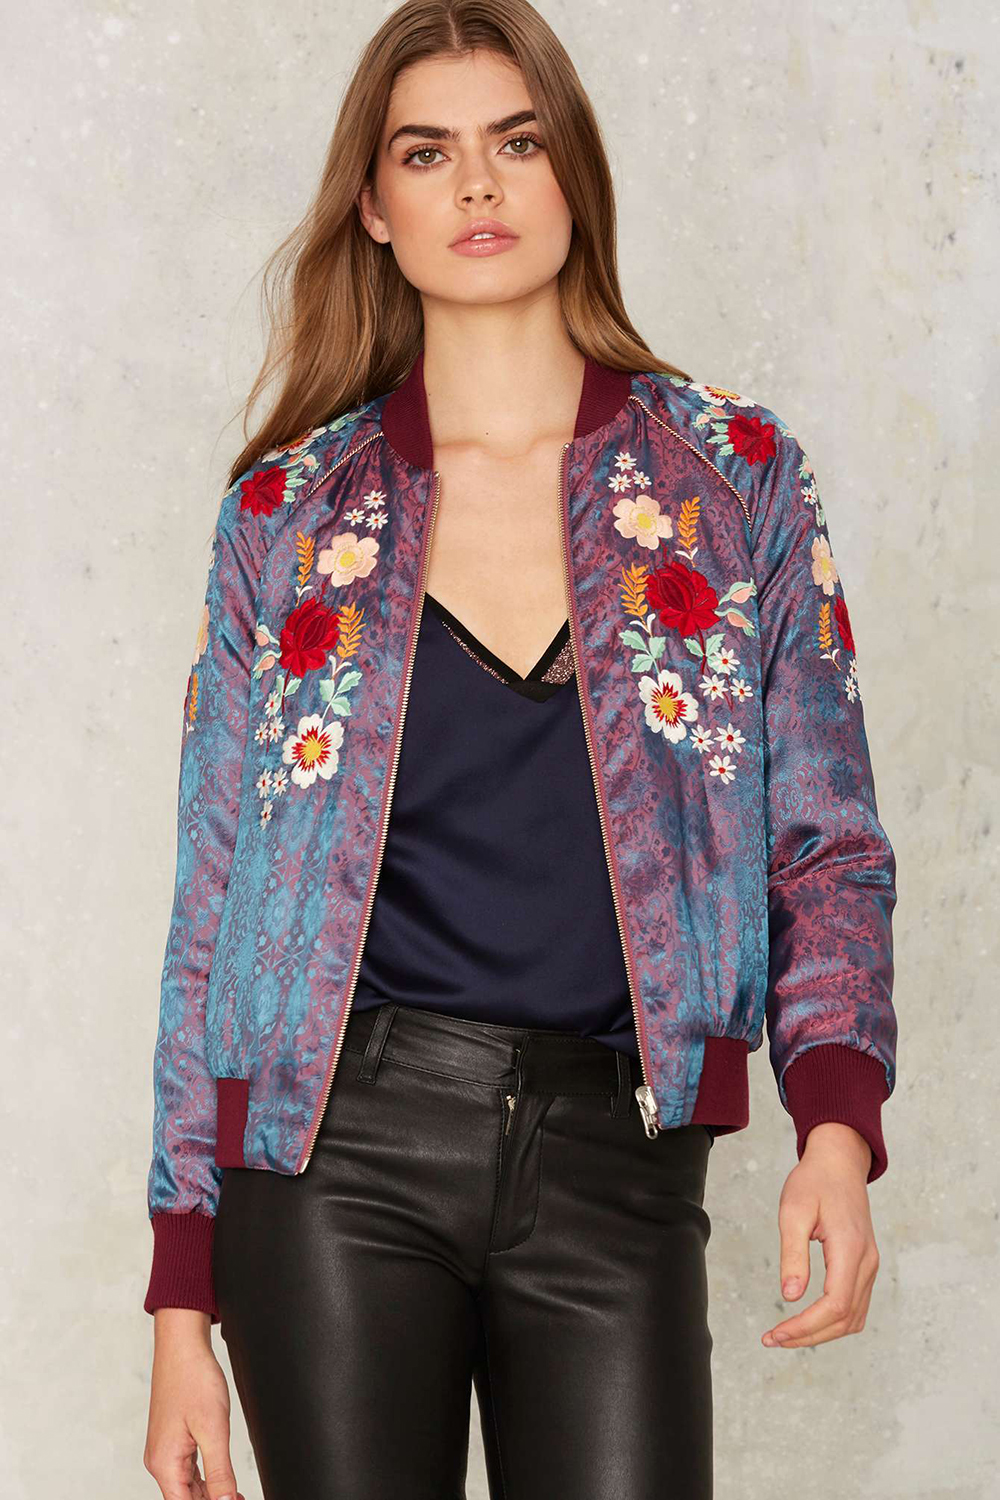 Nasty Gal Hear Me Roar Reversible Bomber Jacket | Valentine's Day Gift Guide